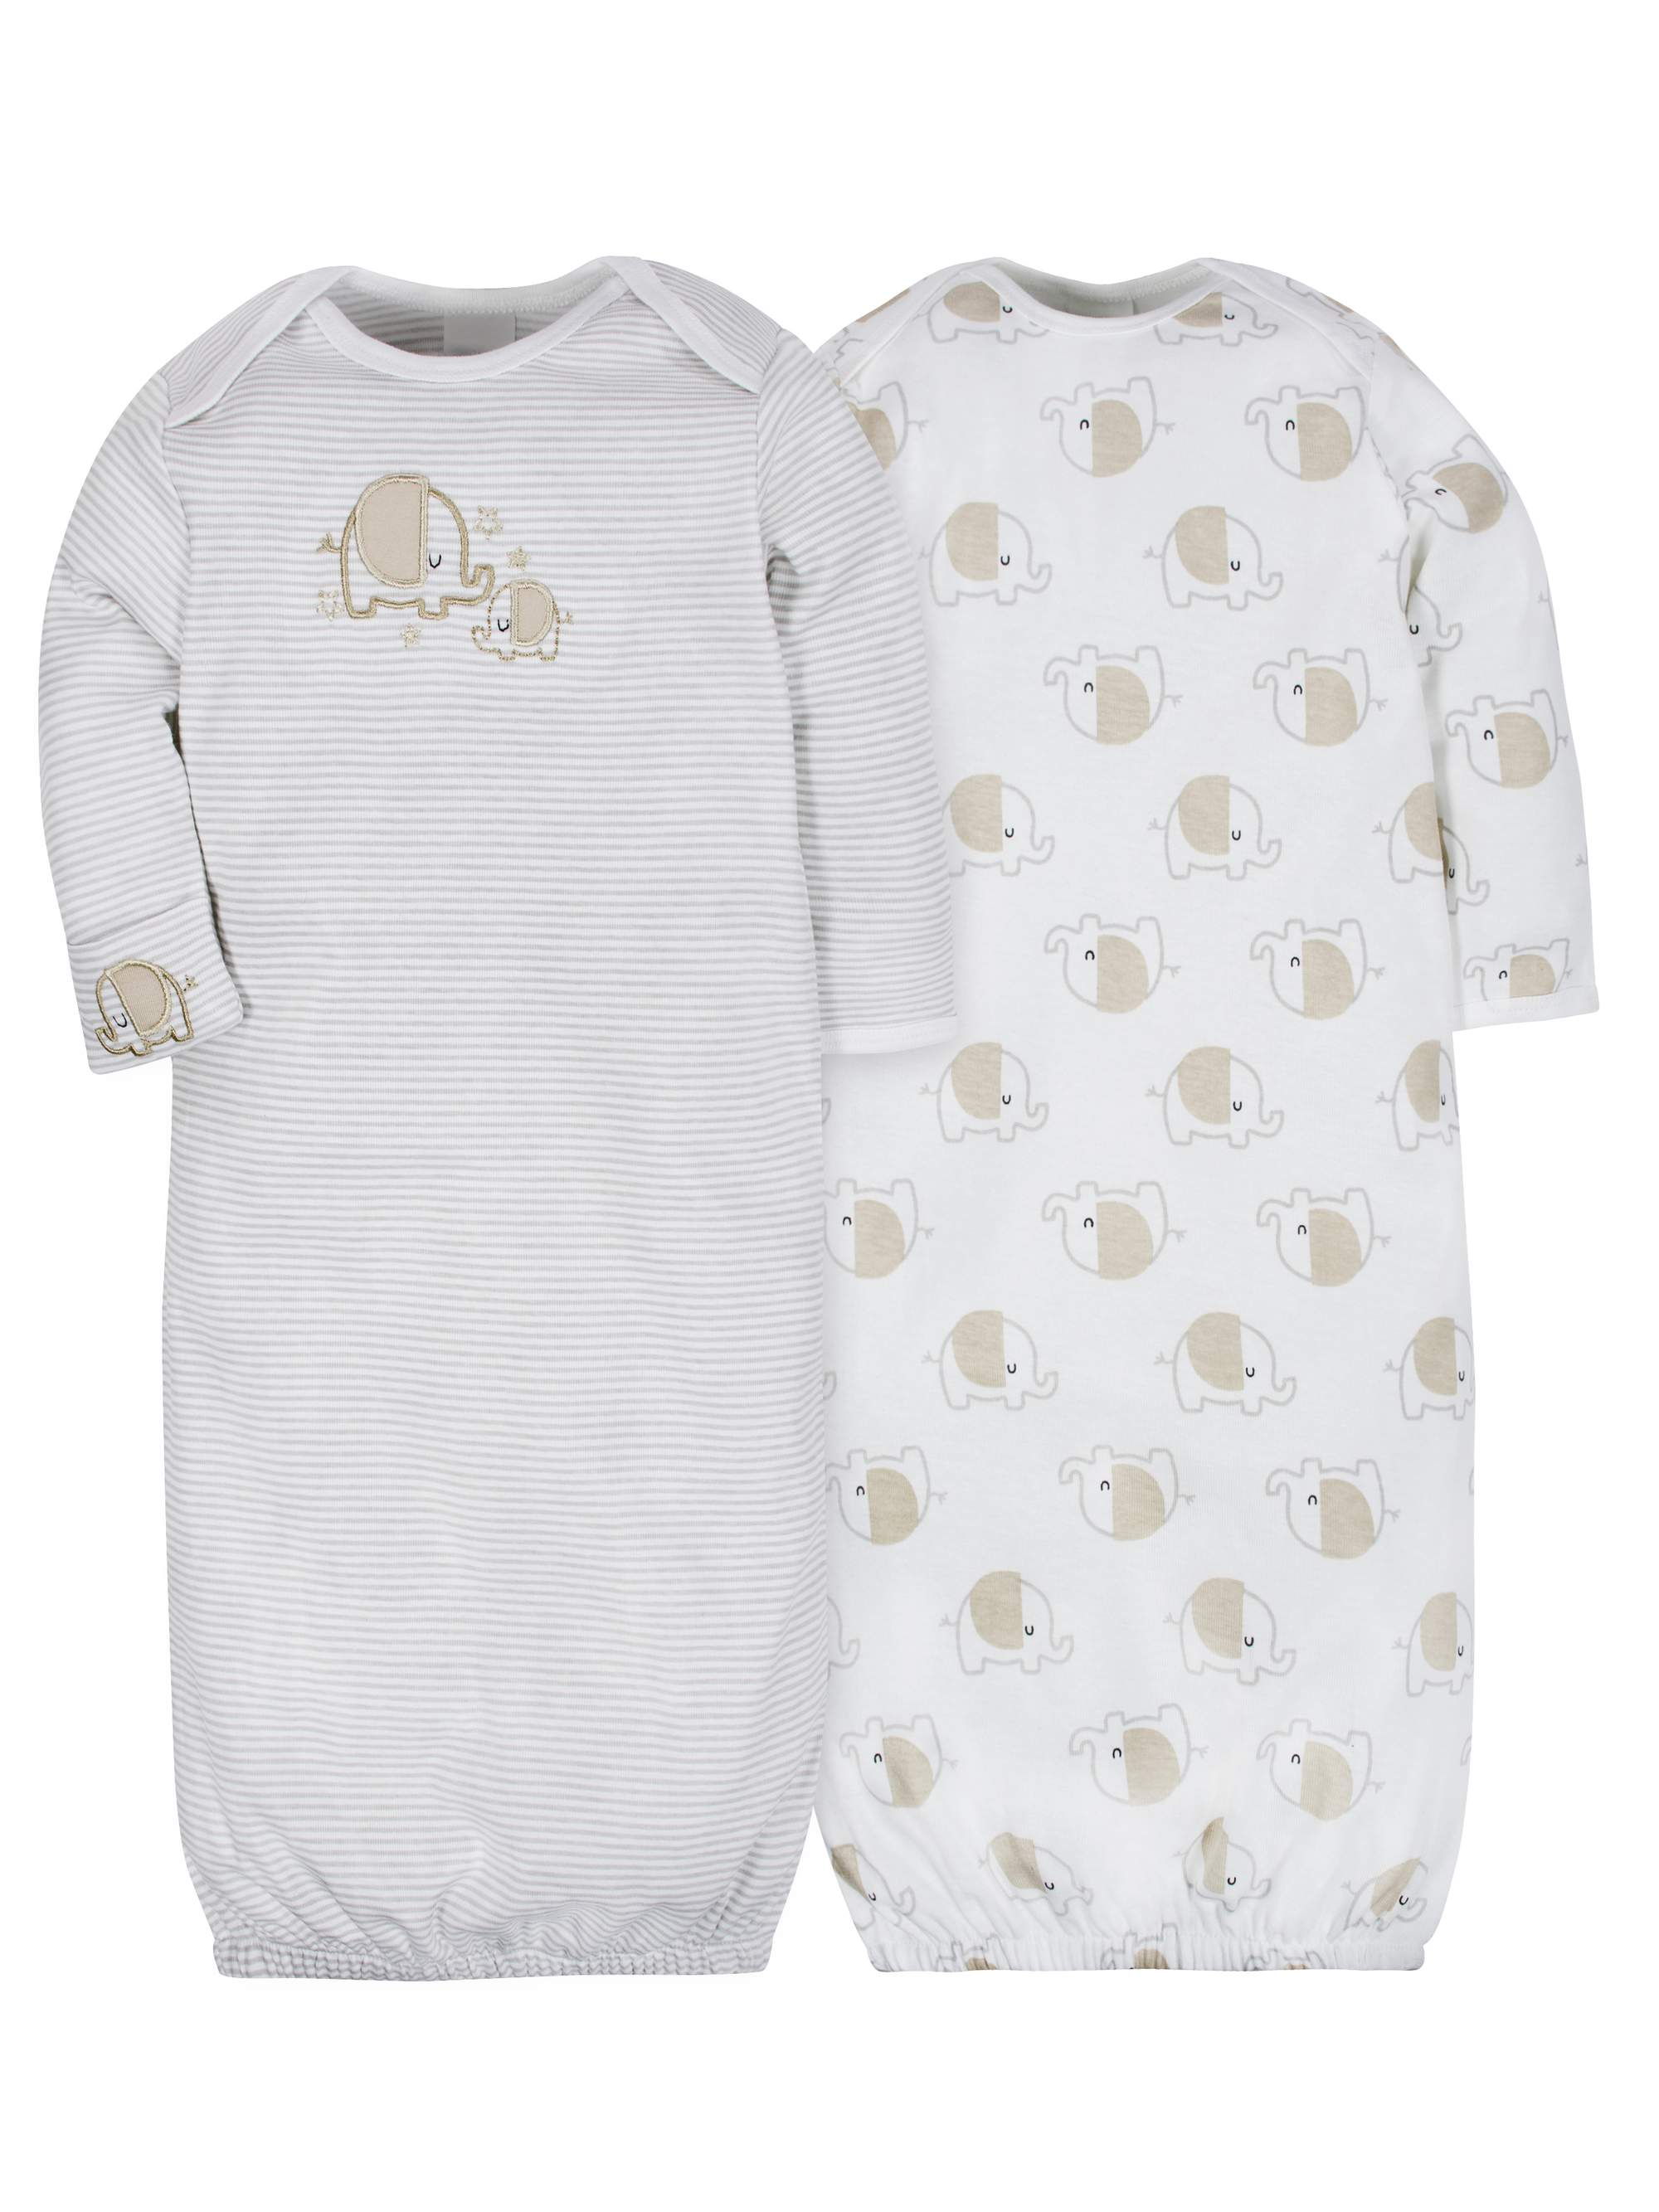 Lap Shoulder Gown, 2pk (Baby Boy or Baby Girl Unisex)